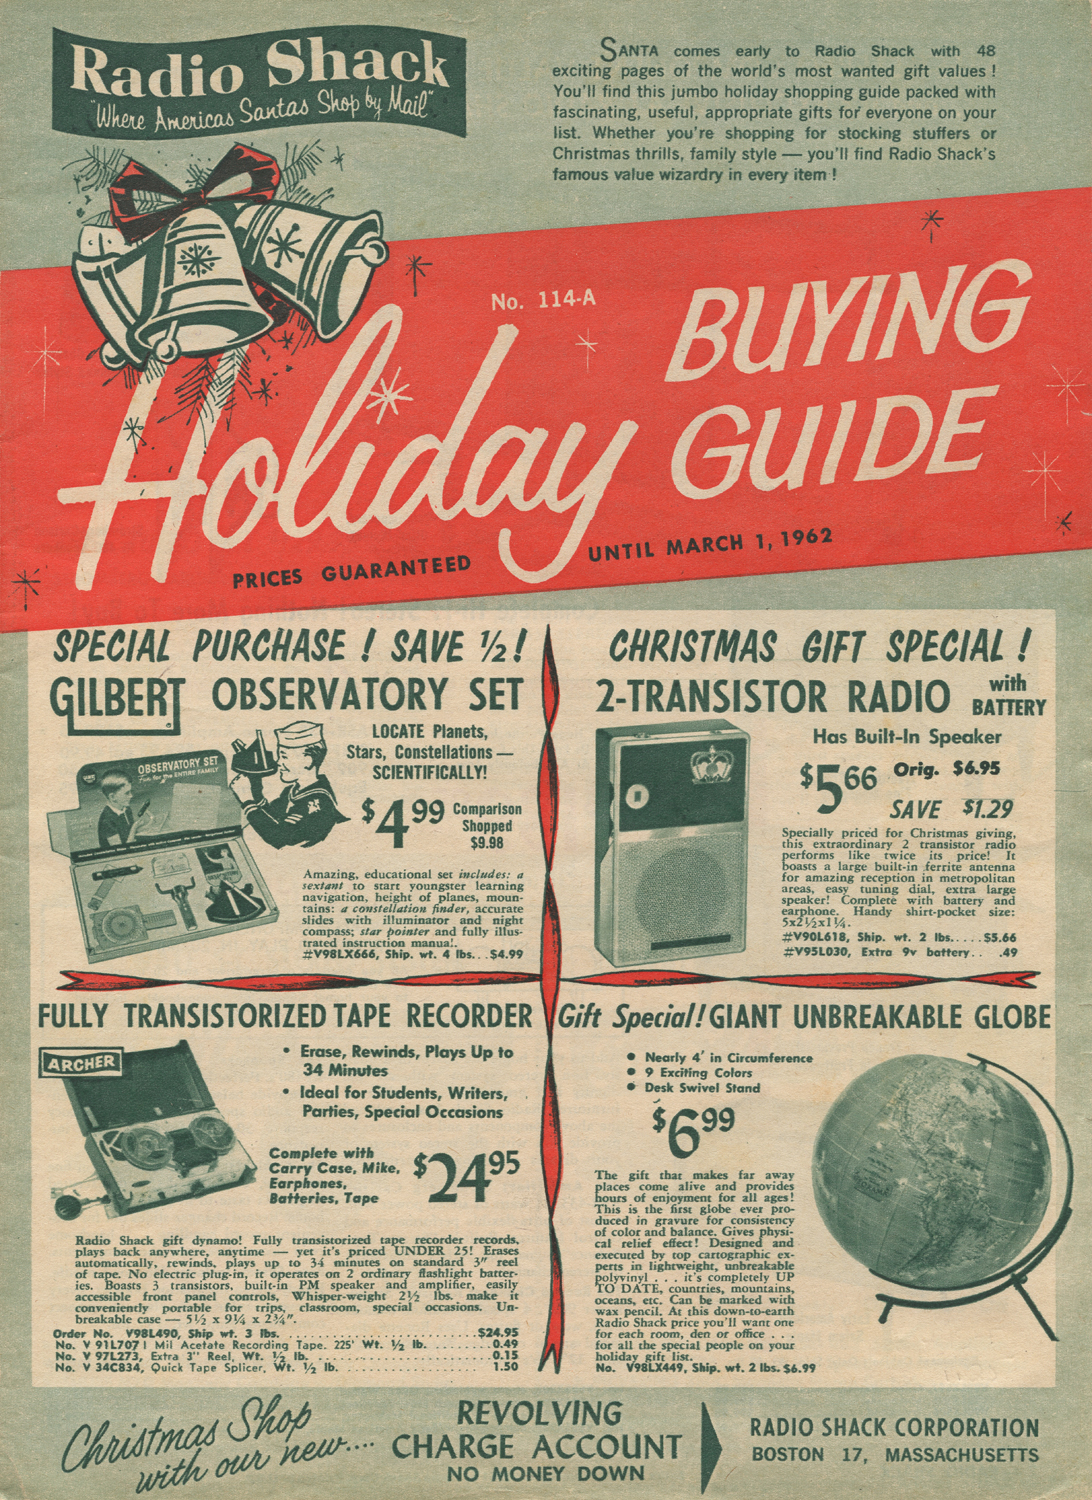 Neato Coolville Highlights From A 1961 Radio Shack